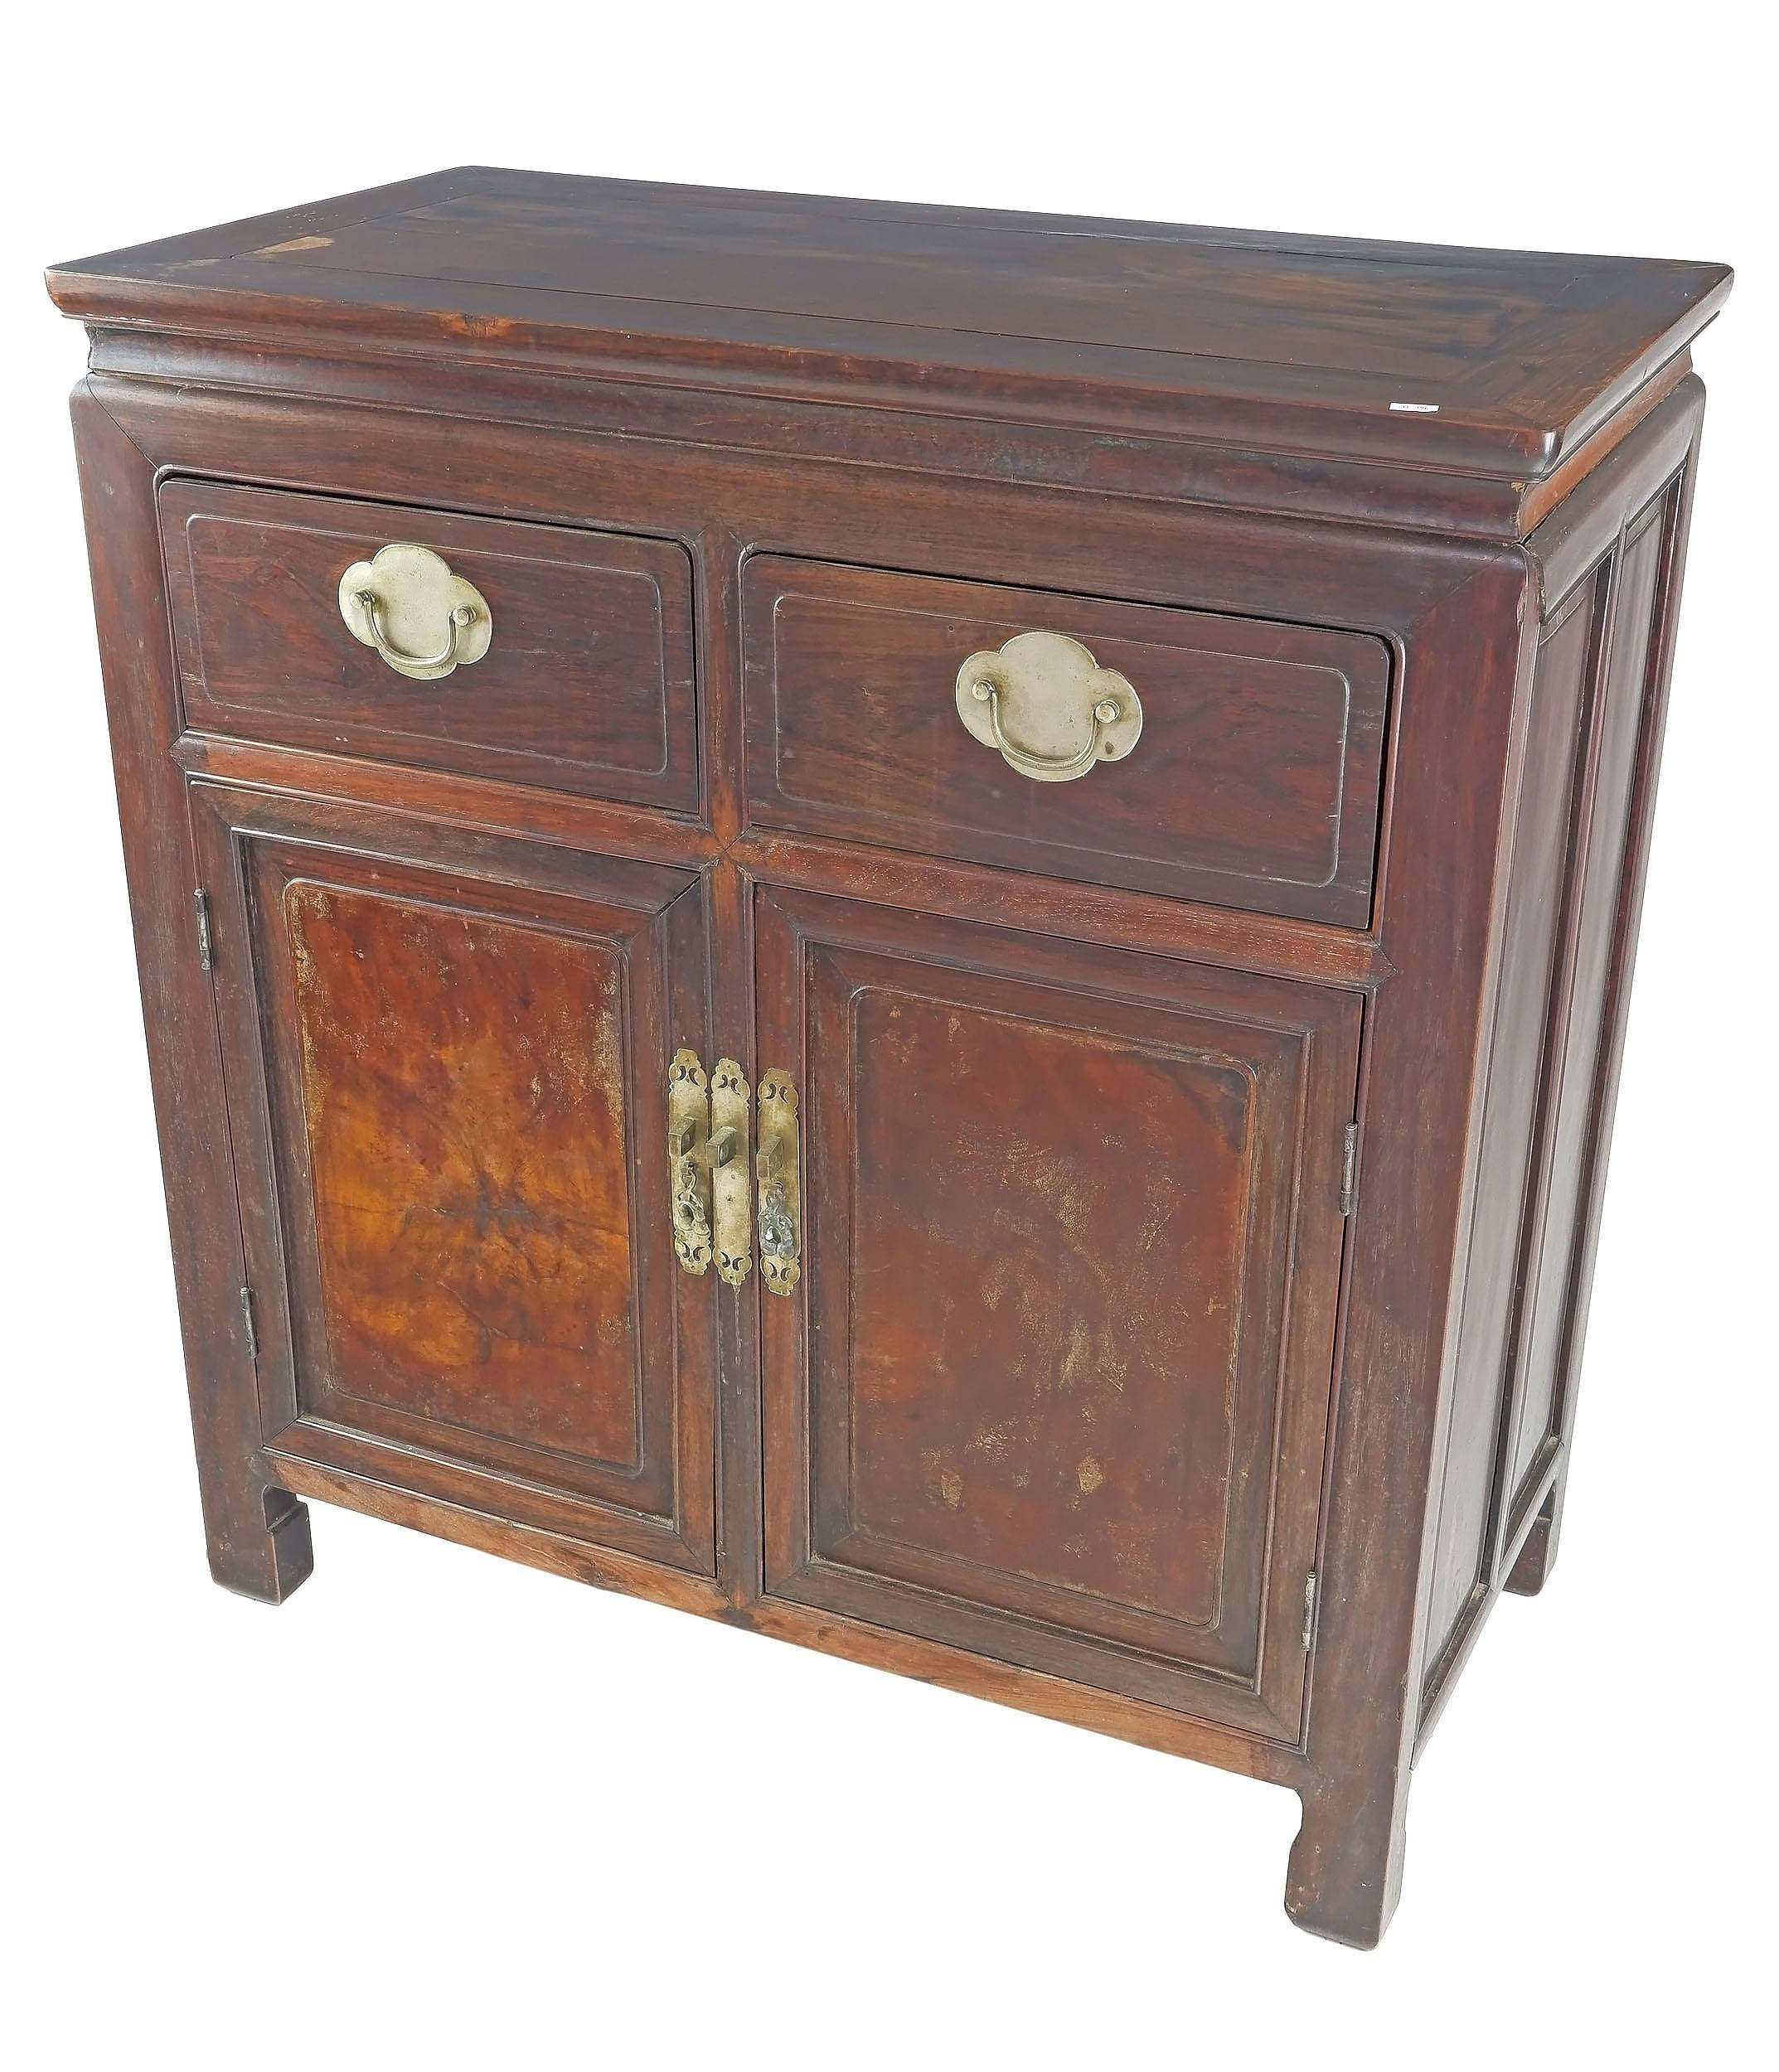 'Antique Chinese Hongmu Rosewood and Burlwood Panelled Cabinet with Original Baitong Hardware, Late Qing Dynasty'